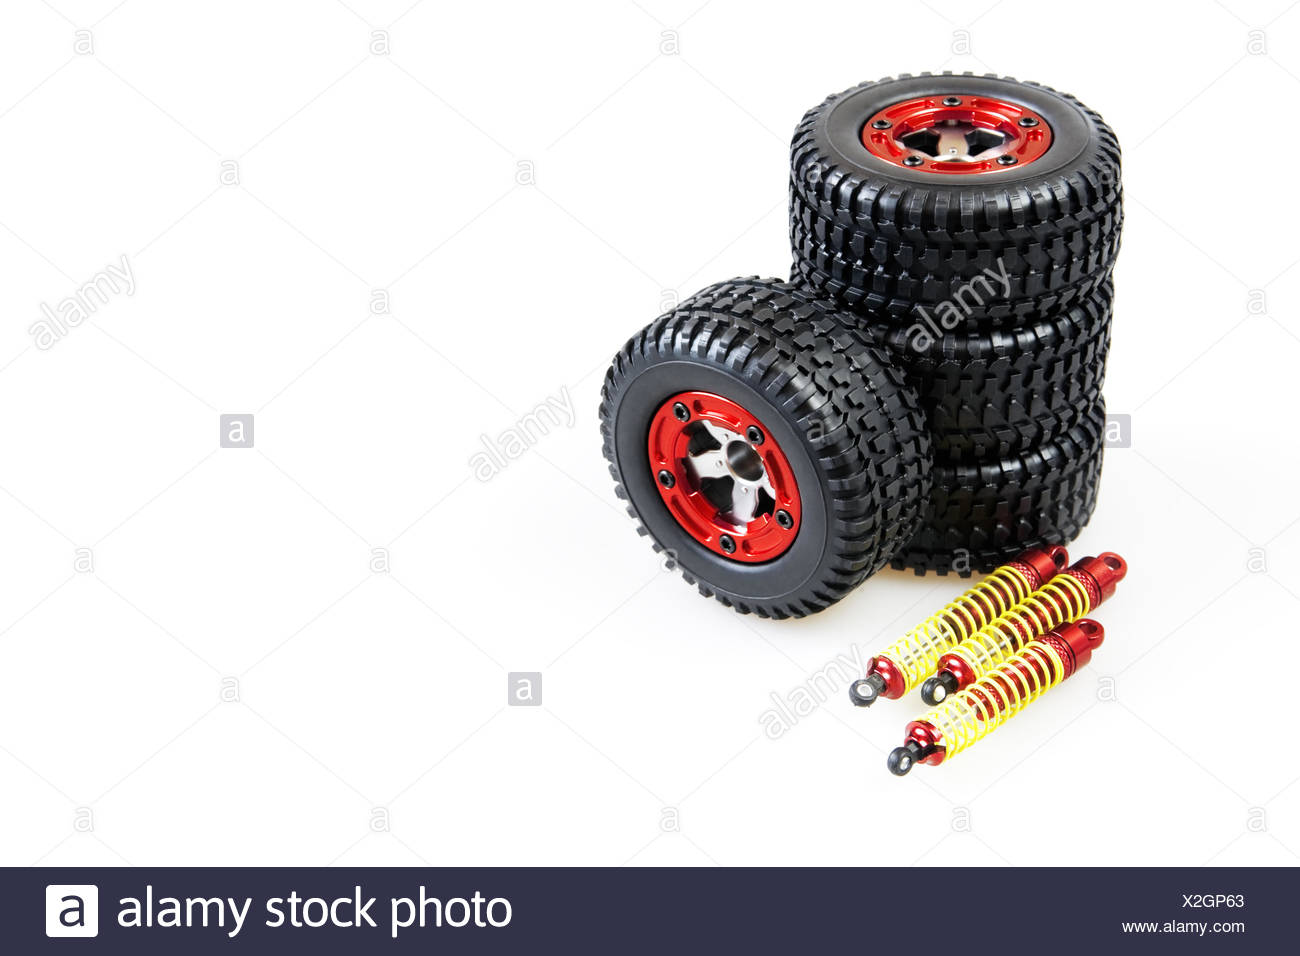 shock-absorbers and wheels of rc car - Stock Image